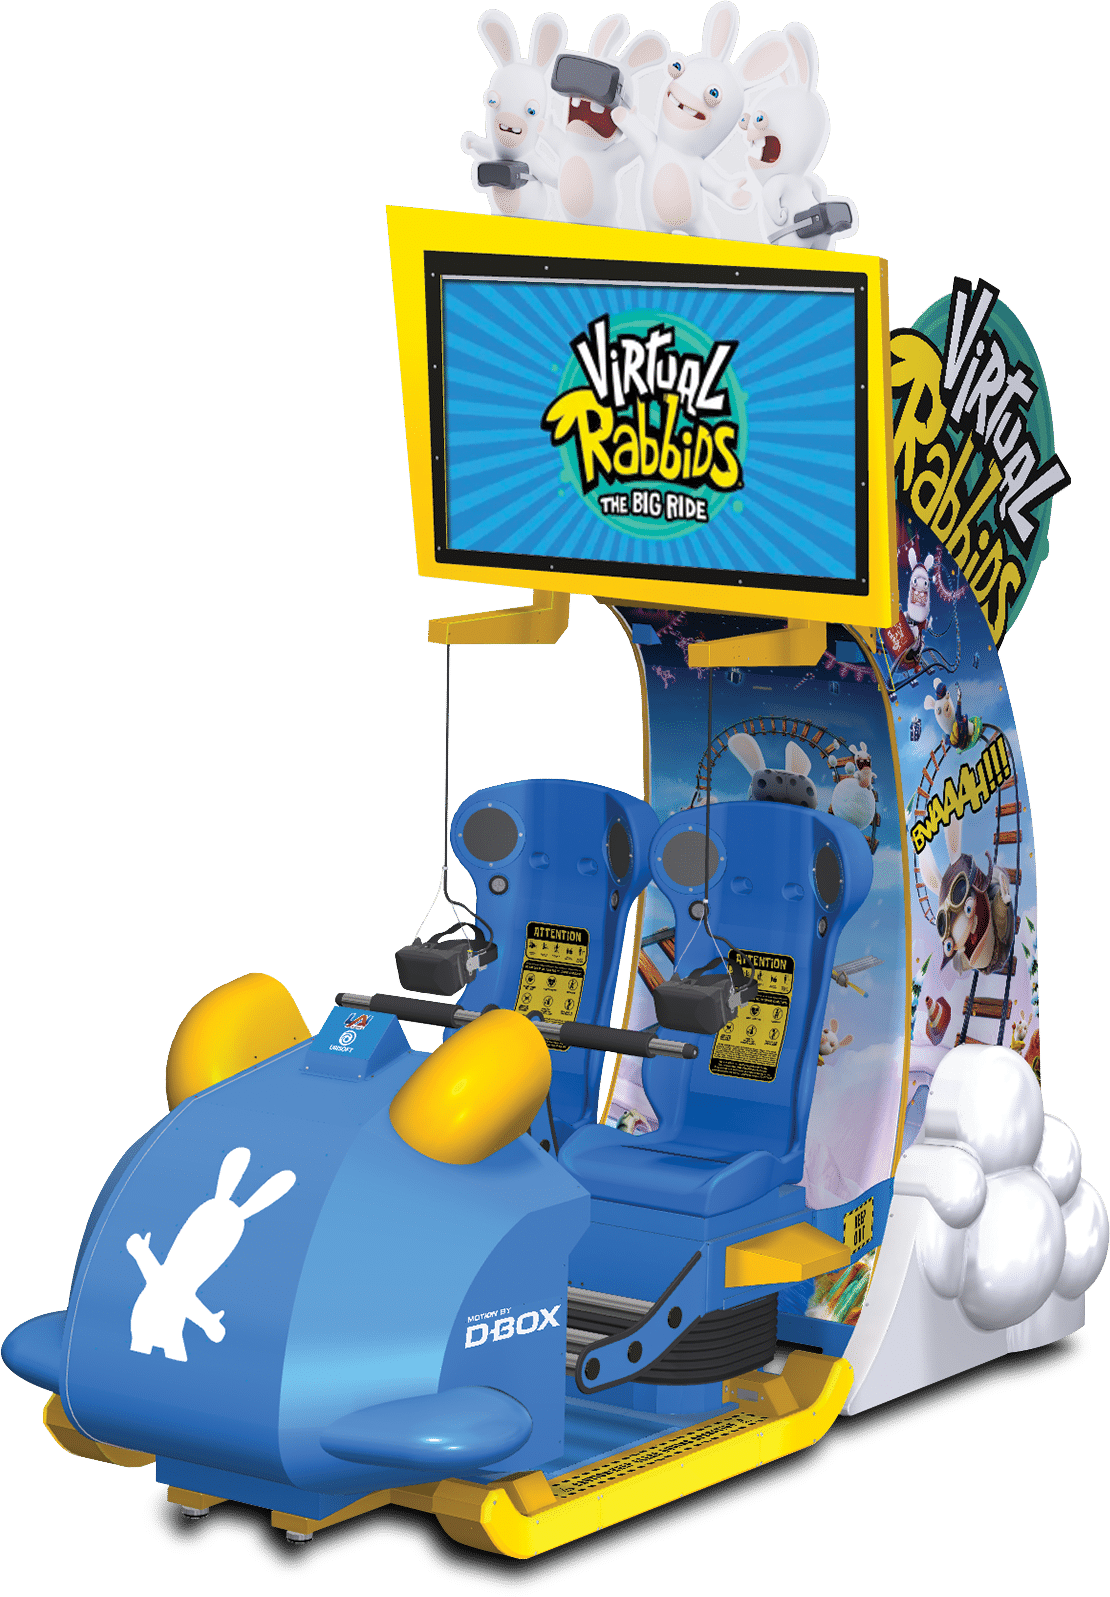 virtual-rabbids-game